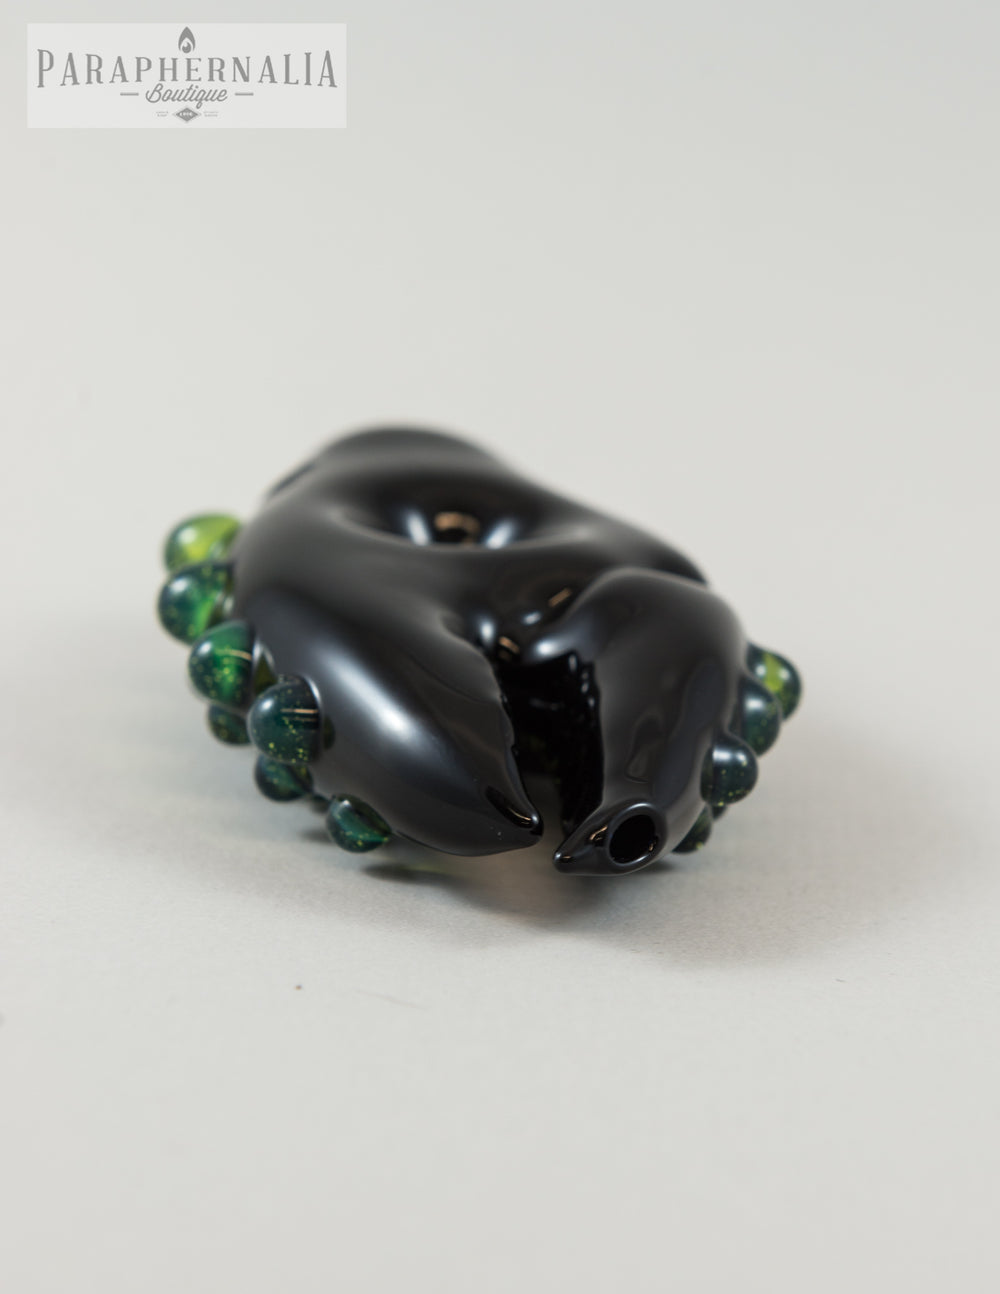 Ely Andrew Jet Black/ Slyme Crab Claw Hand Pipe